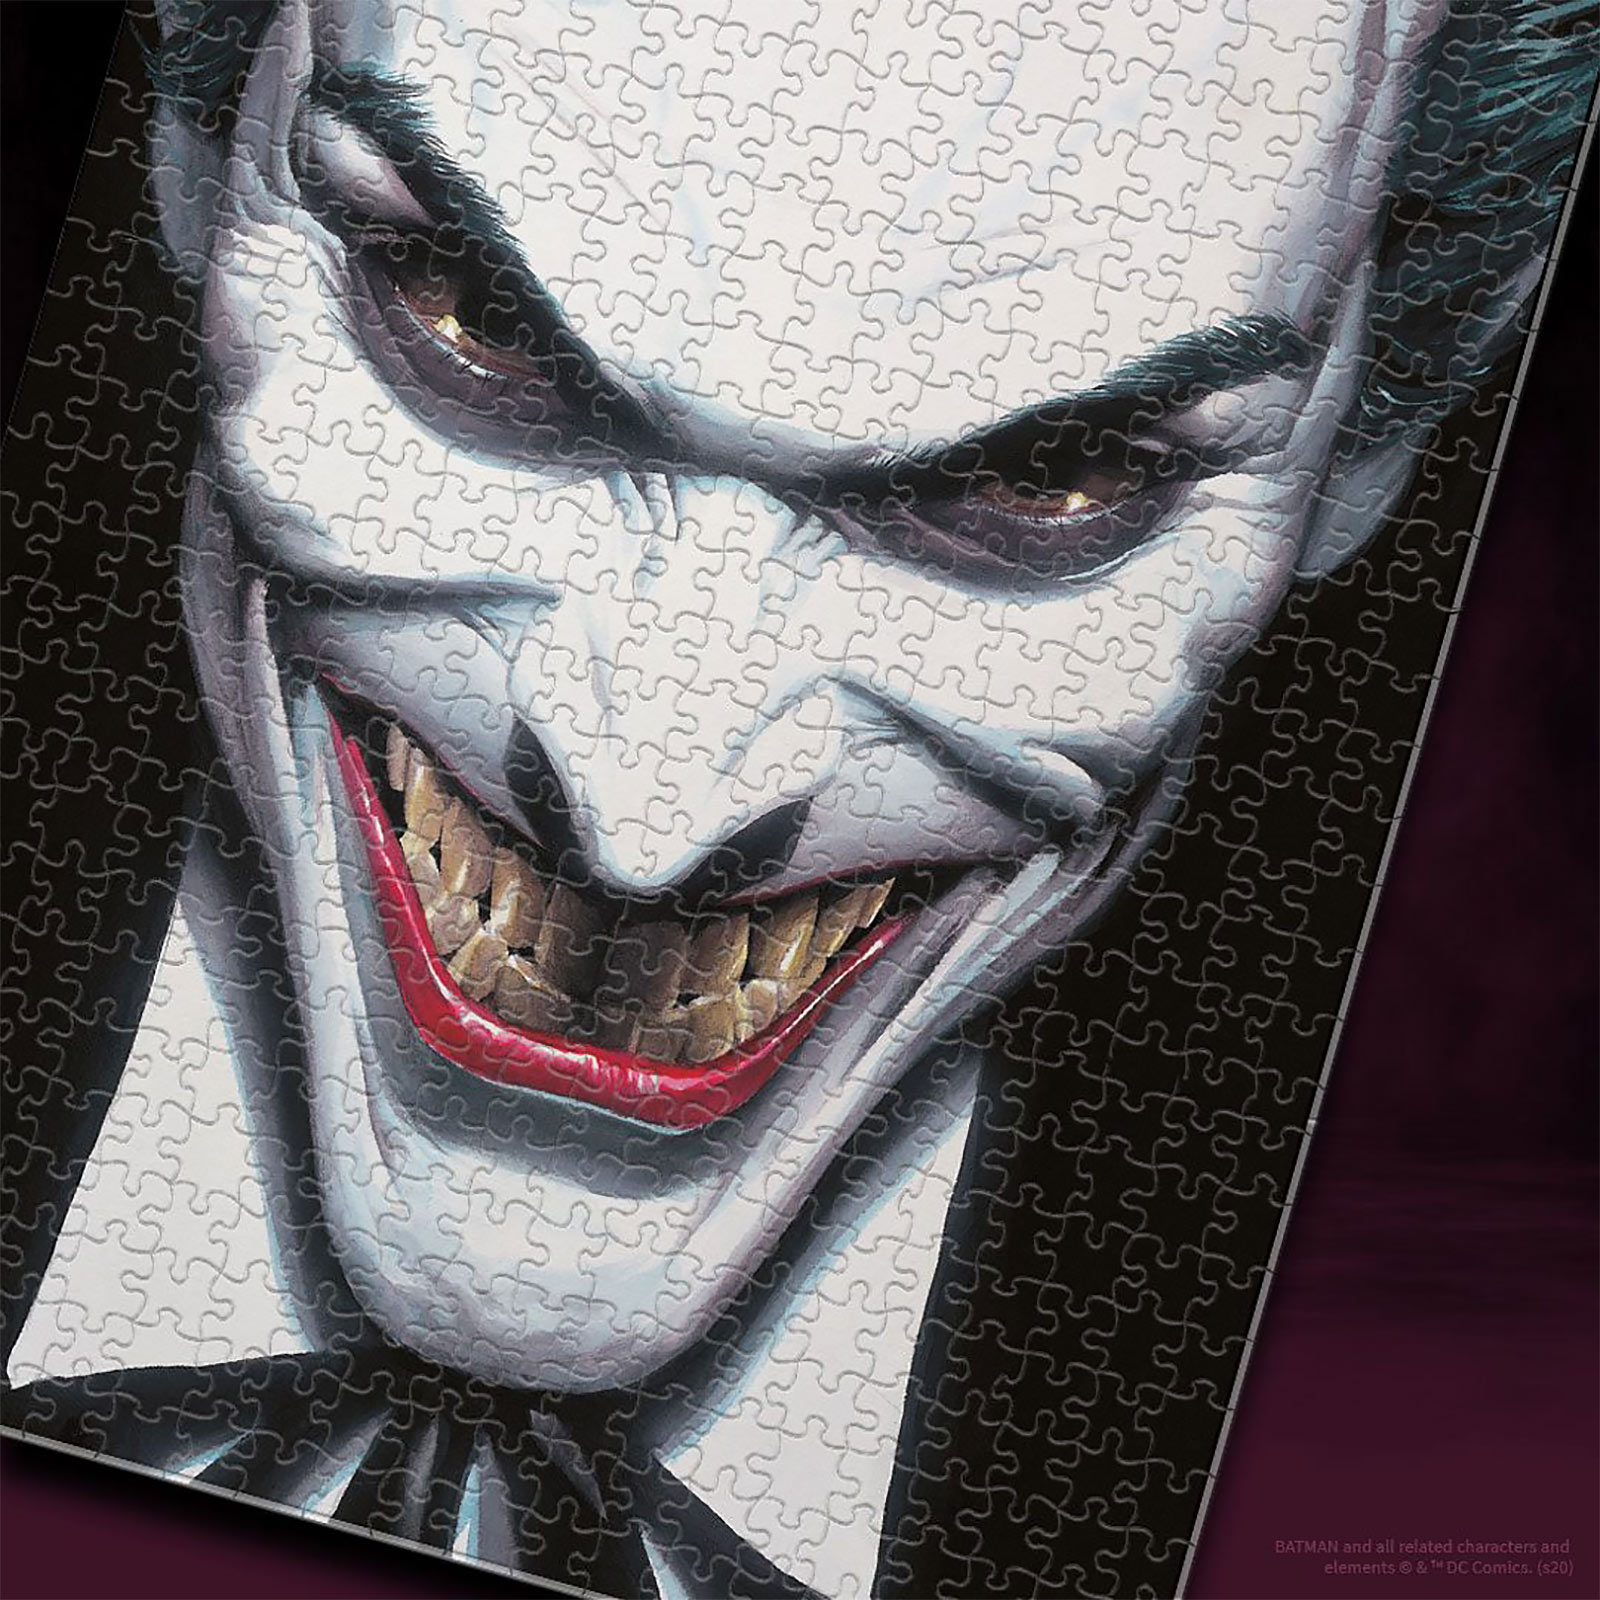 Joker - Prince of Crime Puzzle